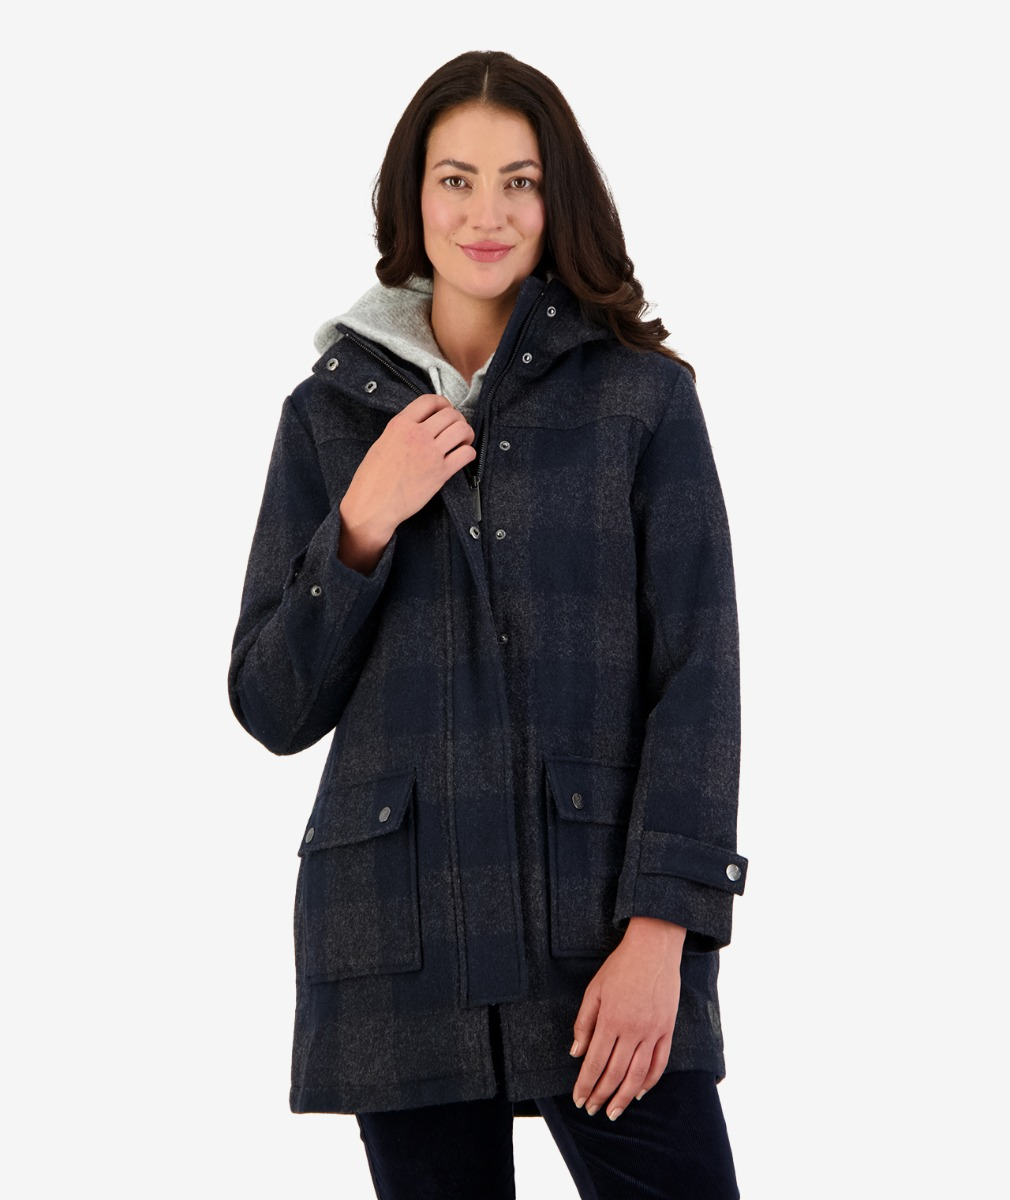 Annmore wool overcoat Graphite Check